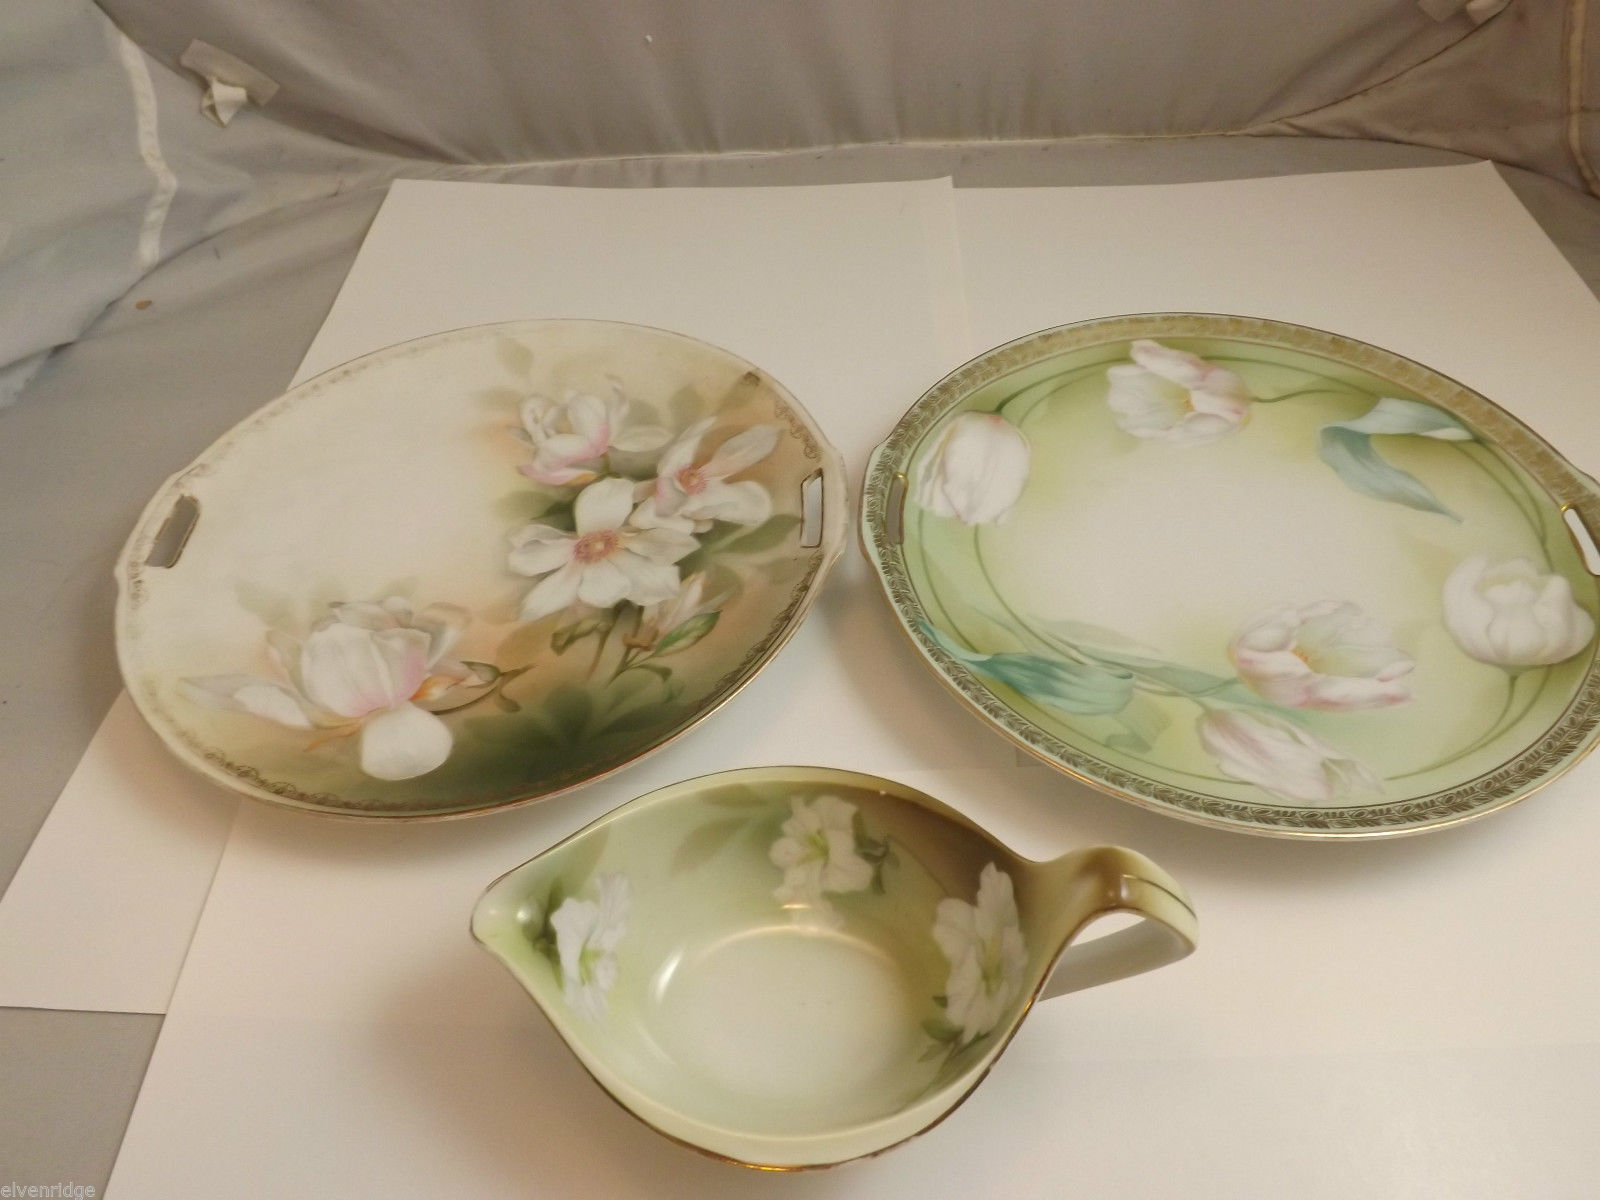 R S Germany 2 Plates and Gravy Bowl/Server